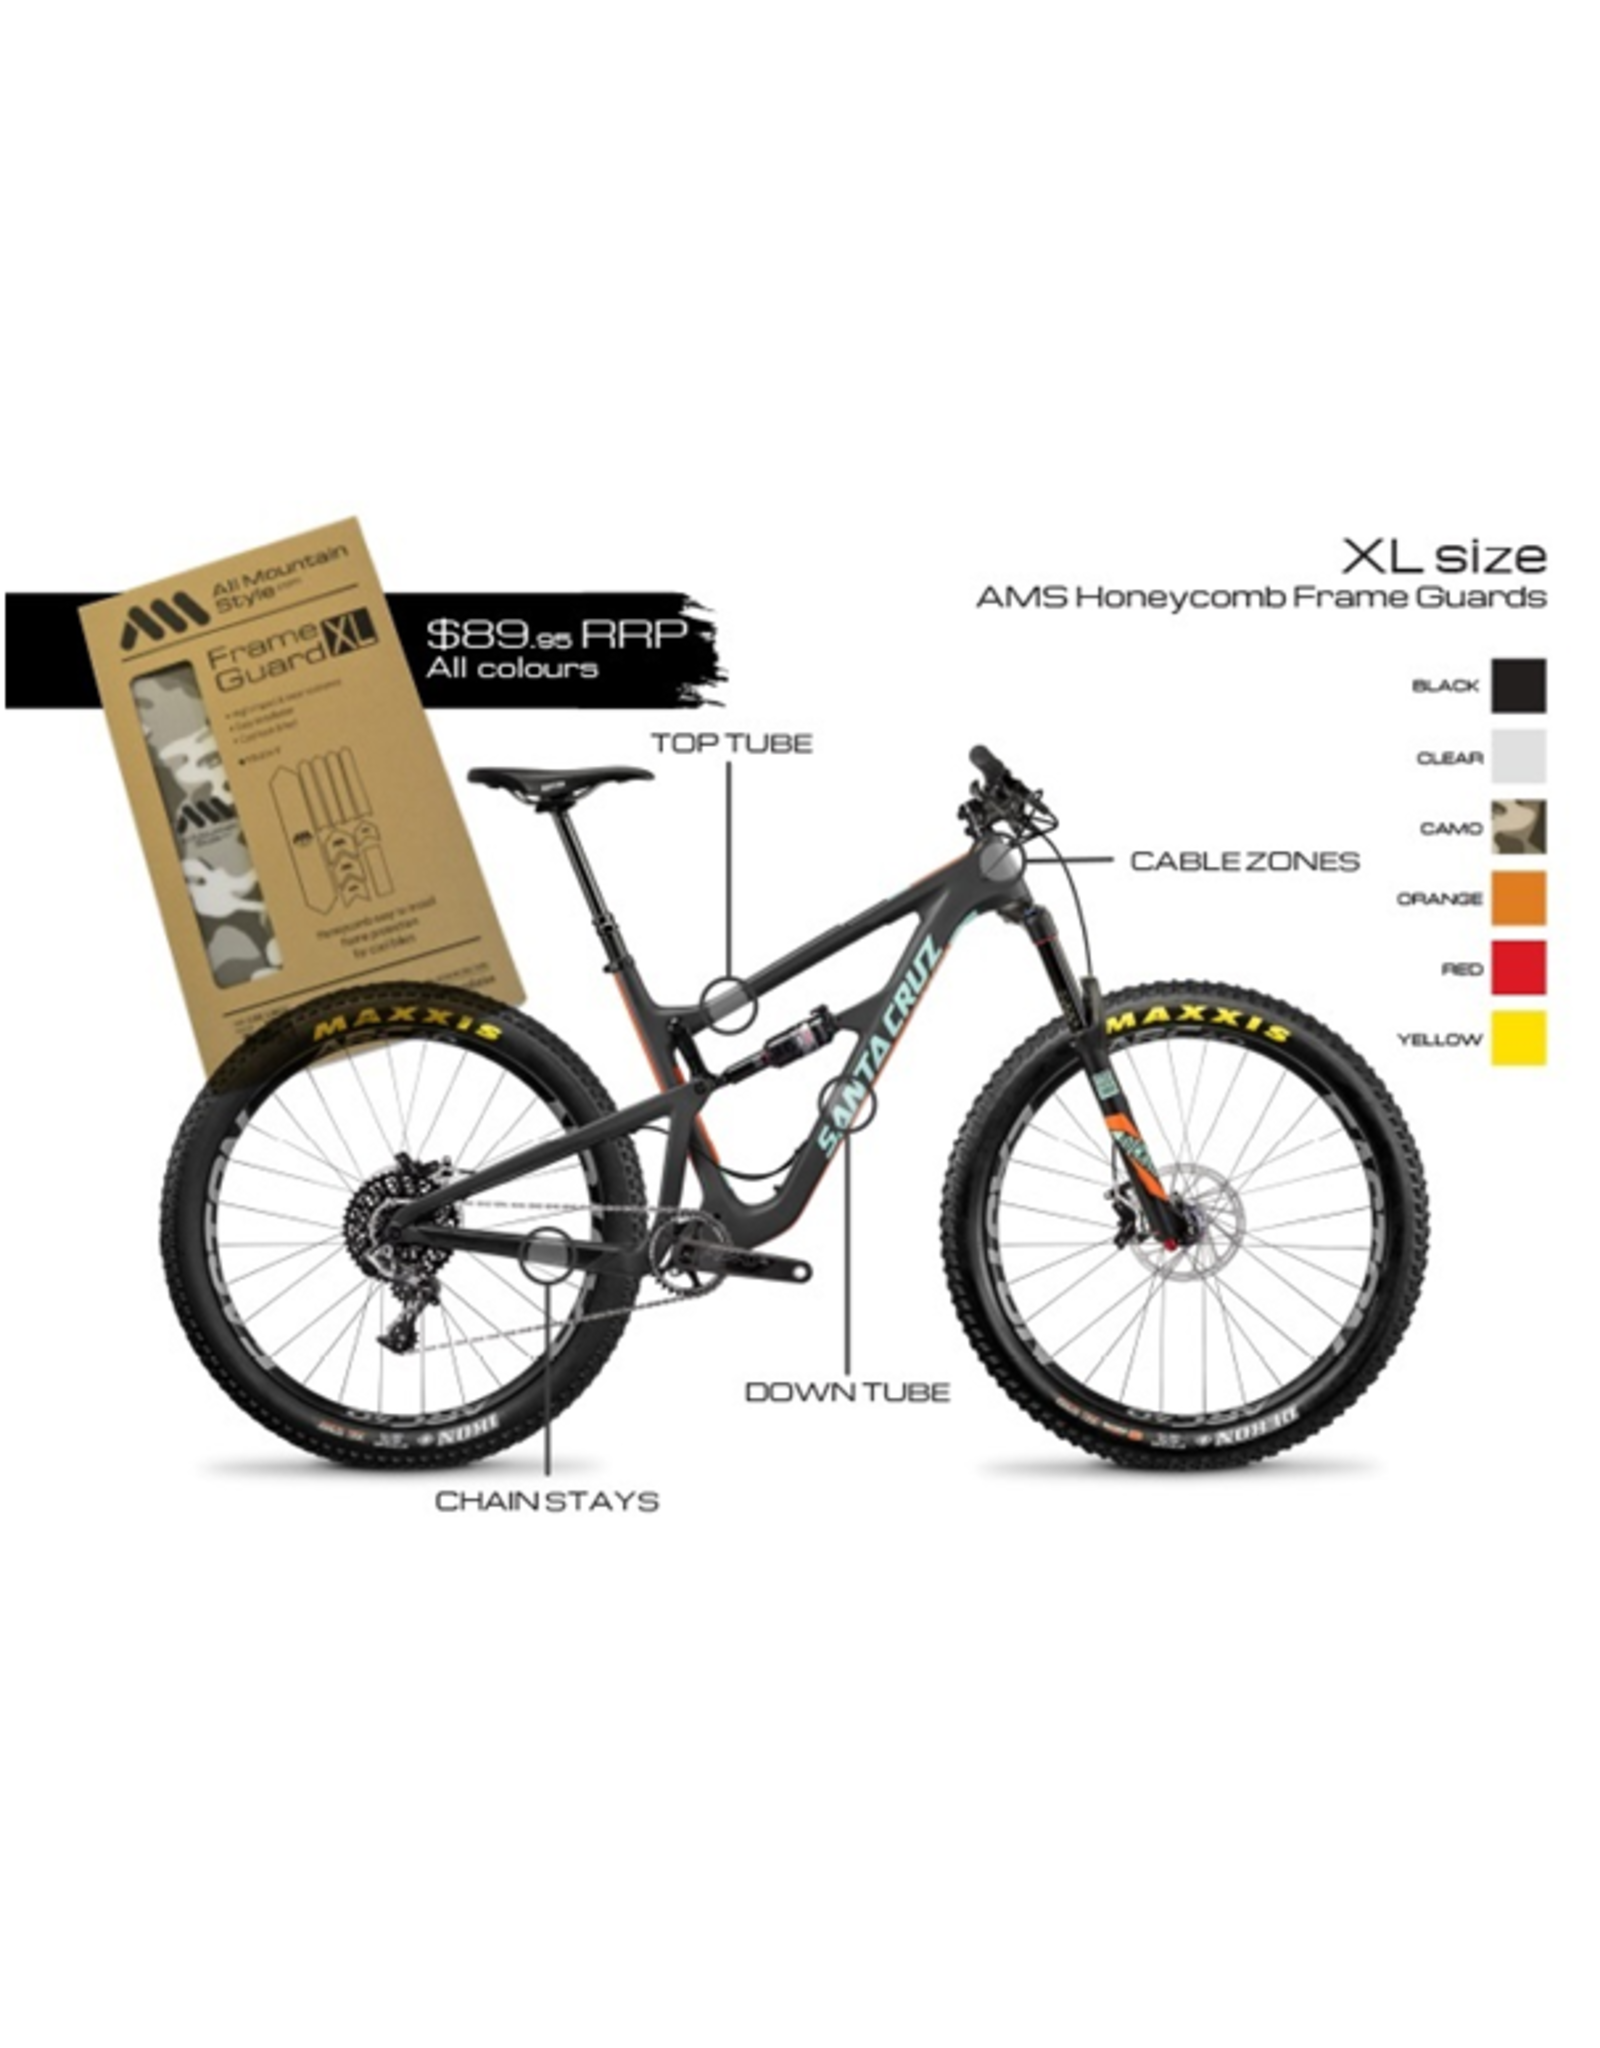 ALL MOUNTAIN STYLE FRAME PROTECTION ALL MOUNTAIN STYLE (AMS) FRAME GUARD XL CLEAR /SILVER